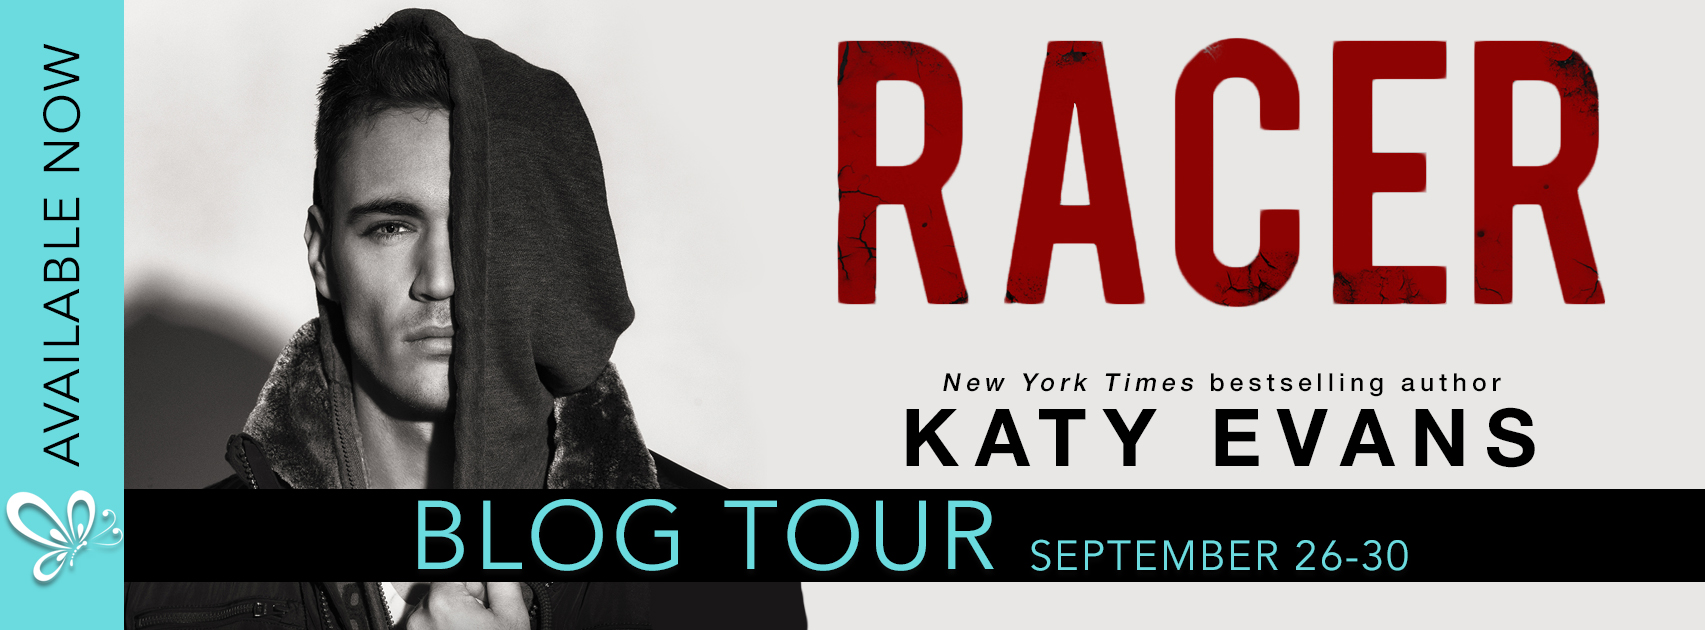 Blog Tour:  Racer by Katy Evans